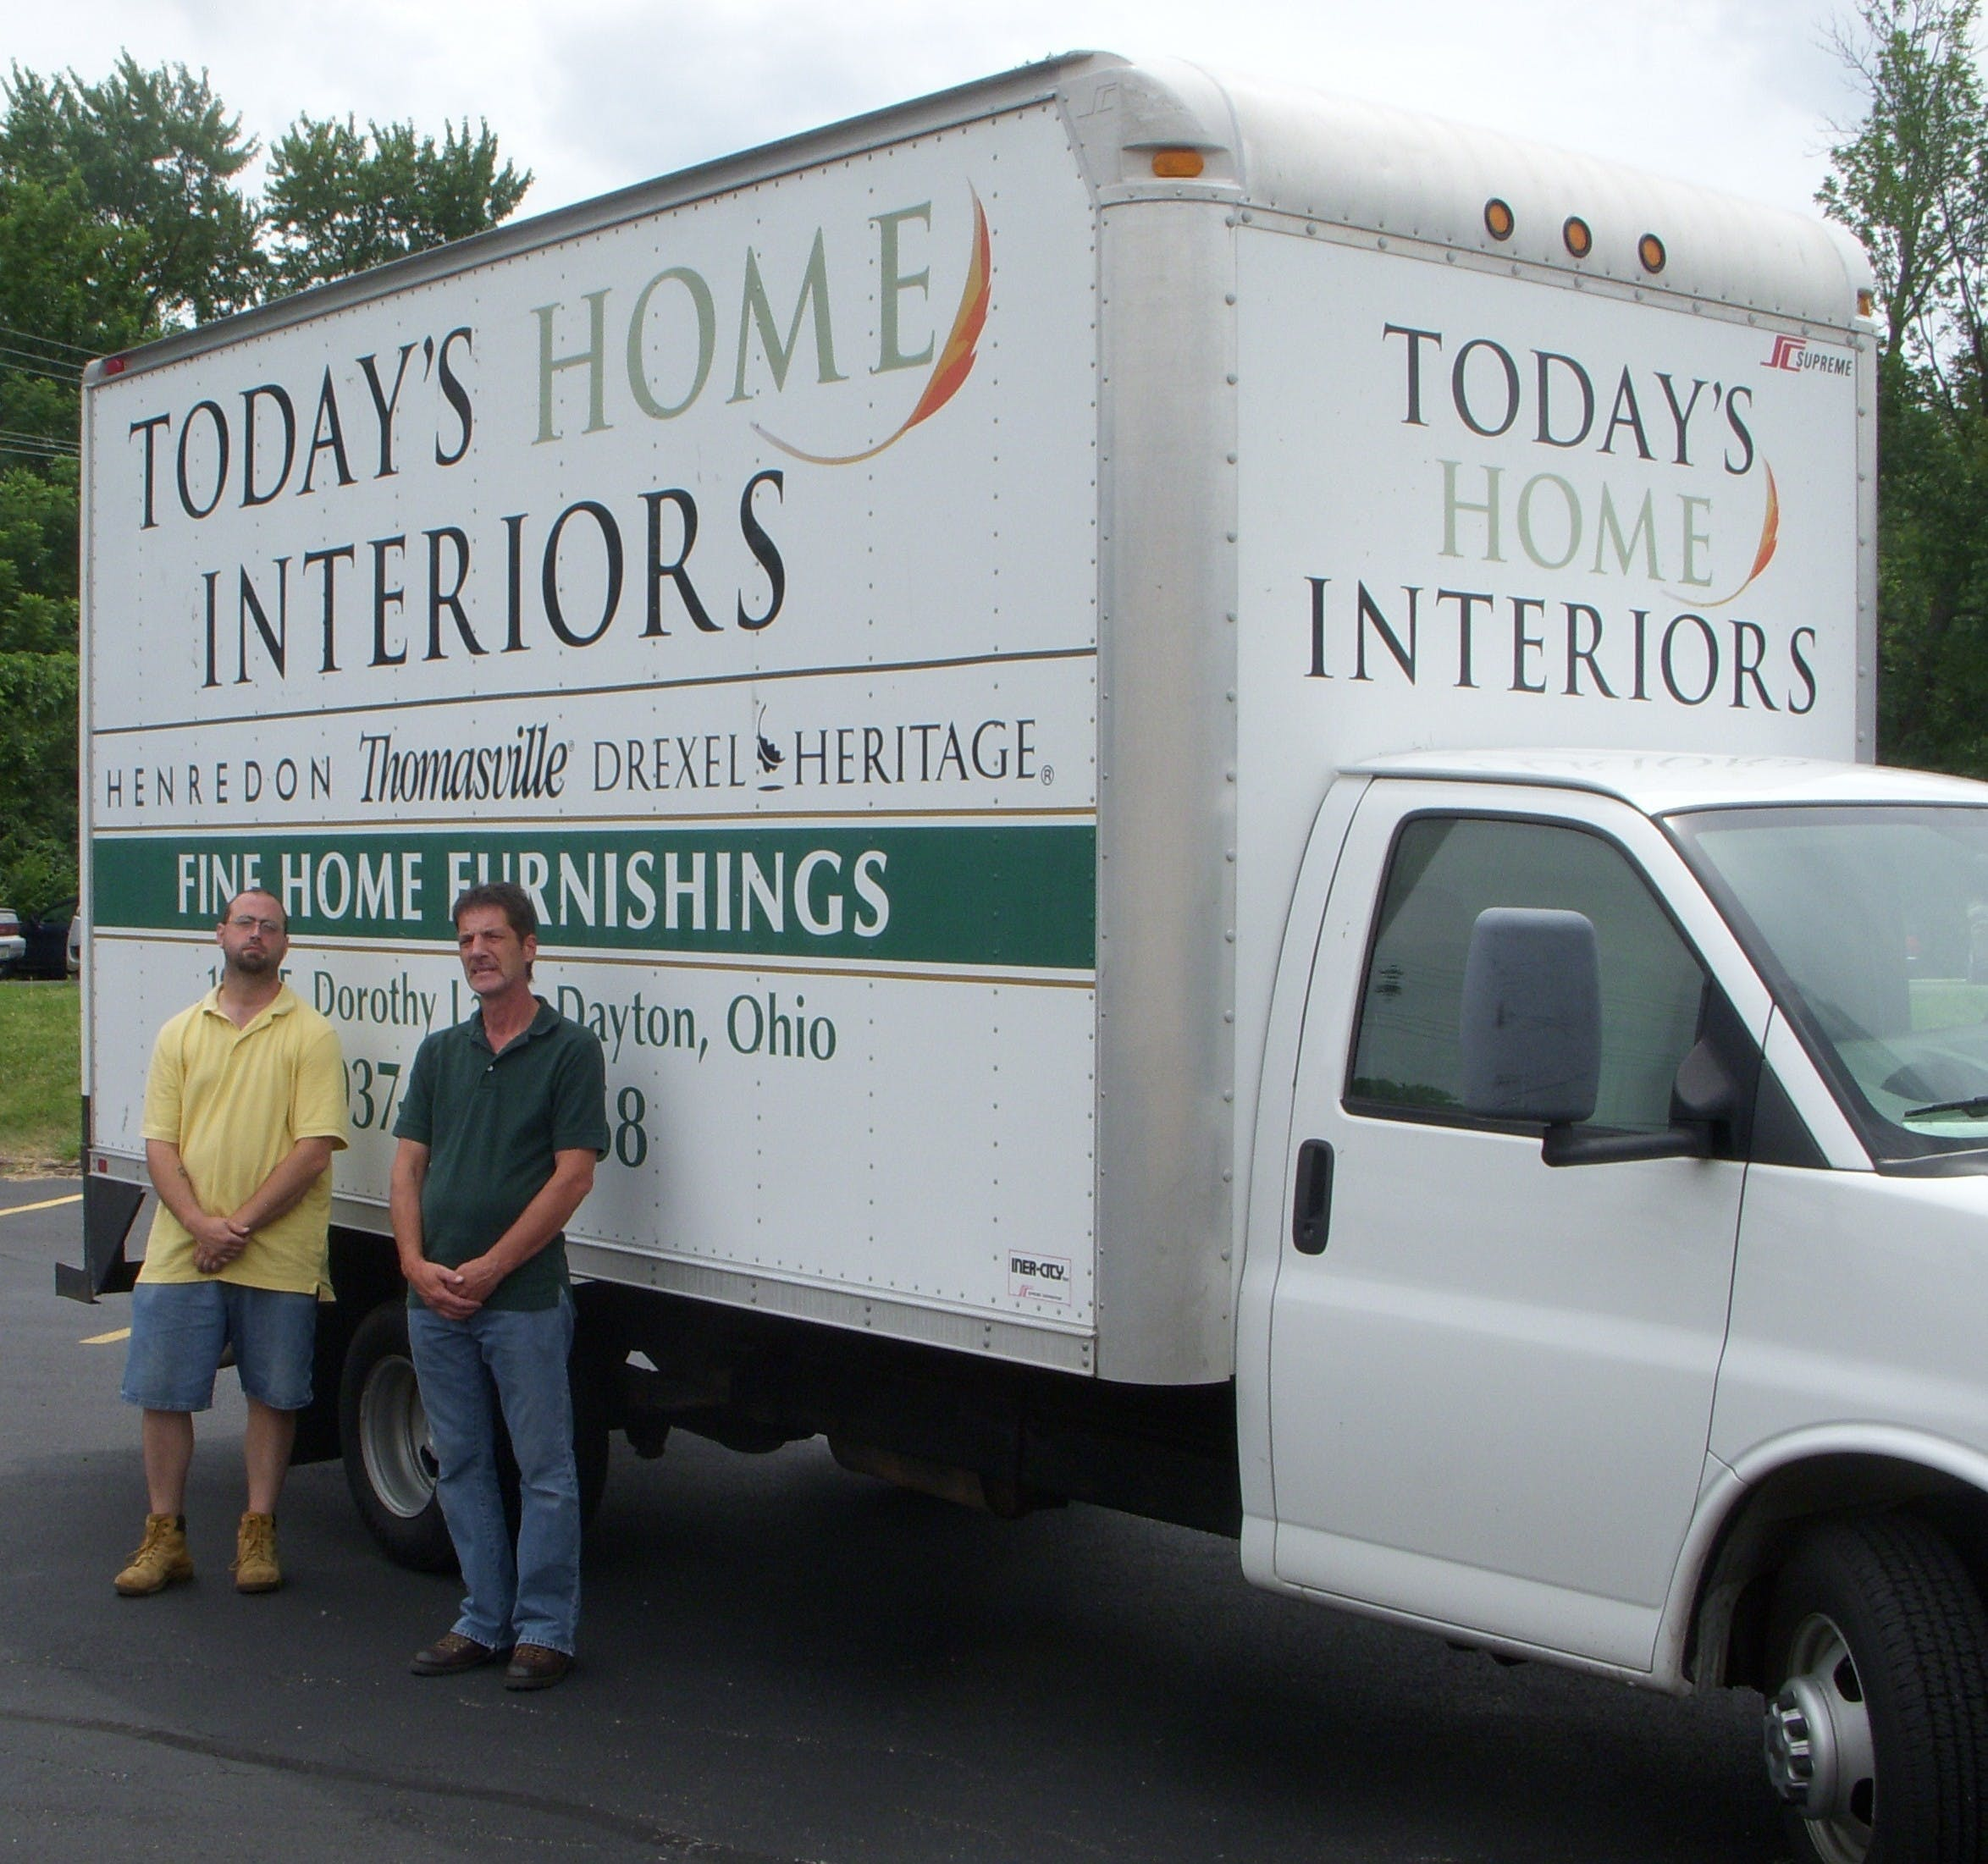 home interior design services. delivery team Interior Design Services  Dayton Today s Home